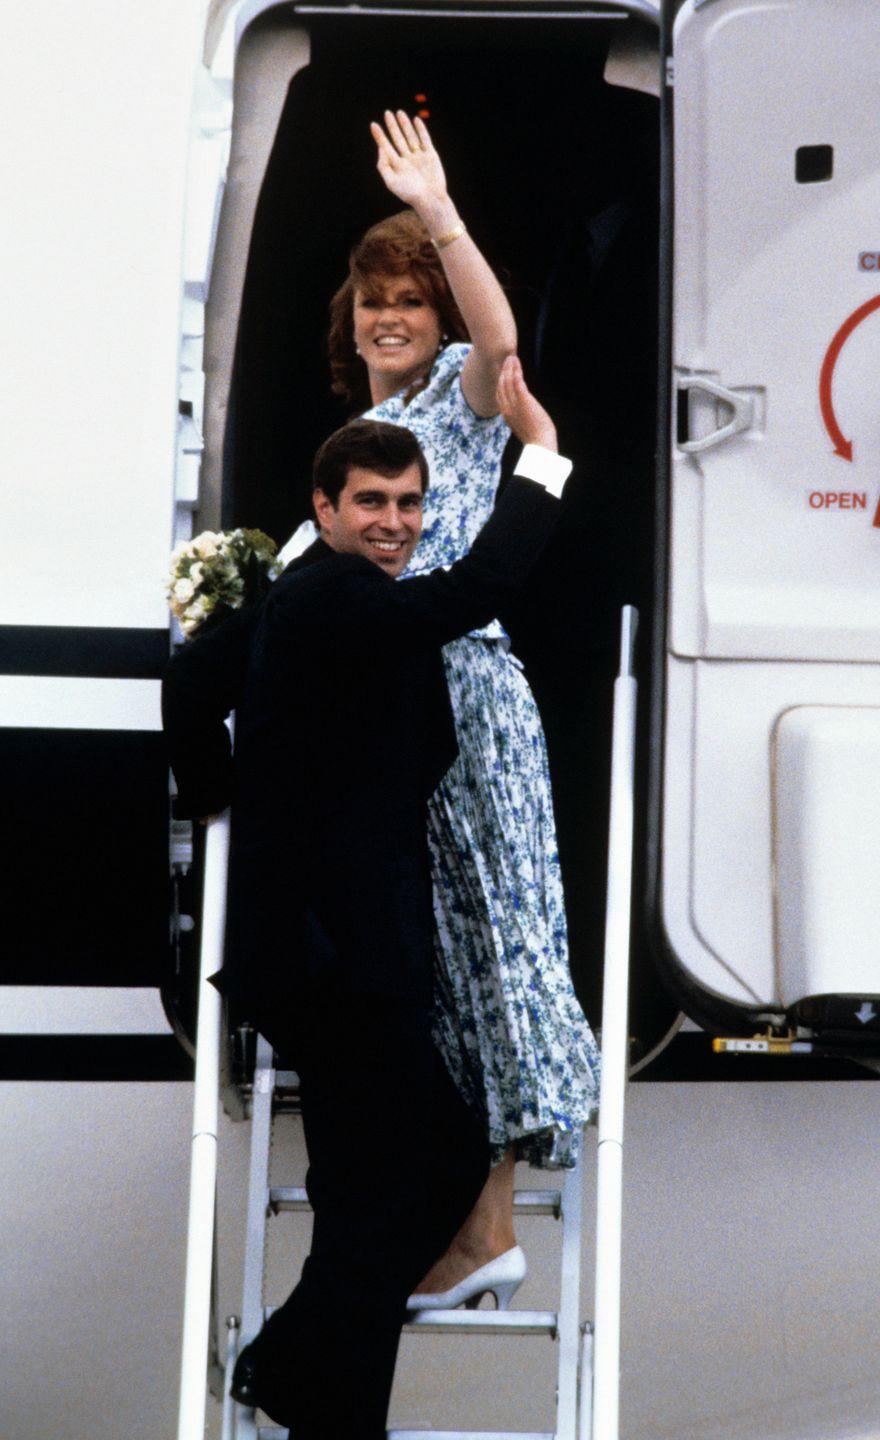 "<p>For their honeymoon in 1986, Prince Andrew and his then-wife, Sarah Ferguson, took the royal jet and the royal yacht <em>Brittania</em> to the Azores, a region in Portugal. The jet had ""Just Married"" emblazoned on the rear door.</p>"